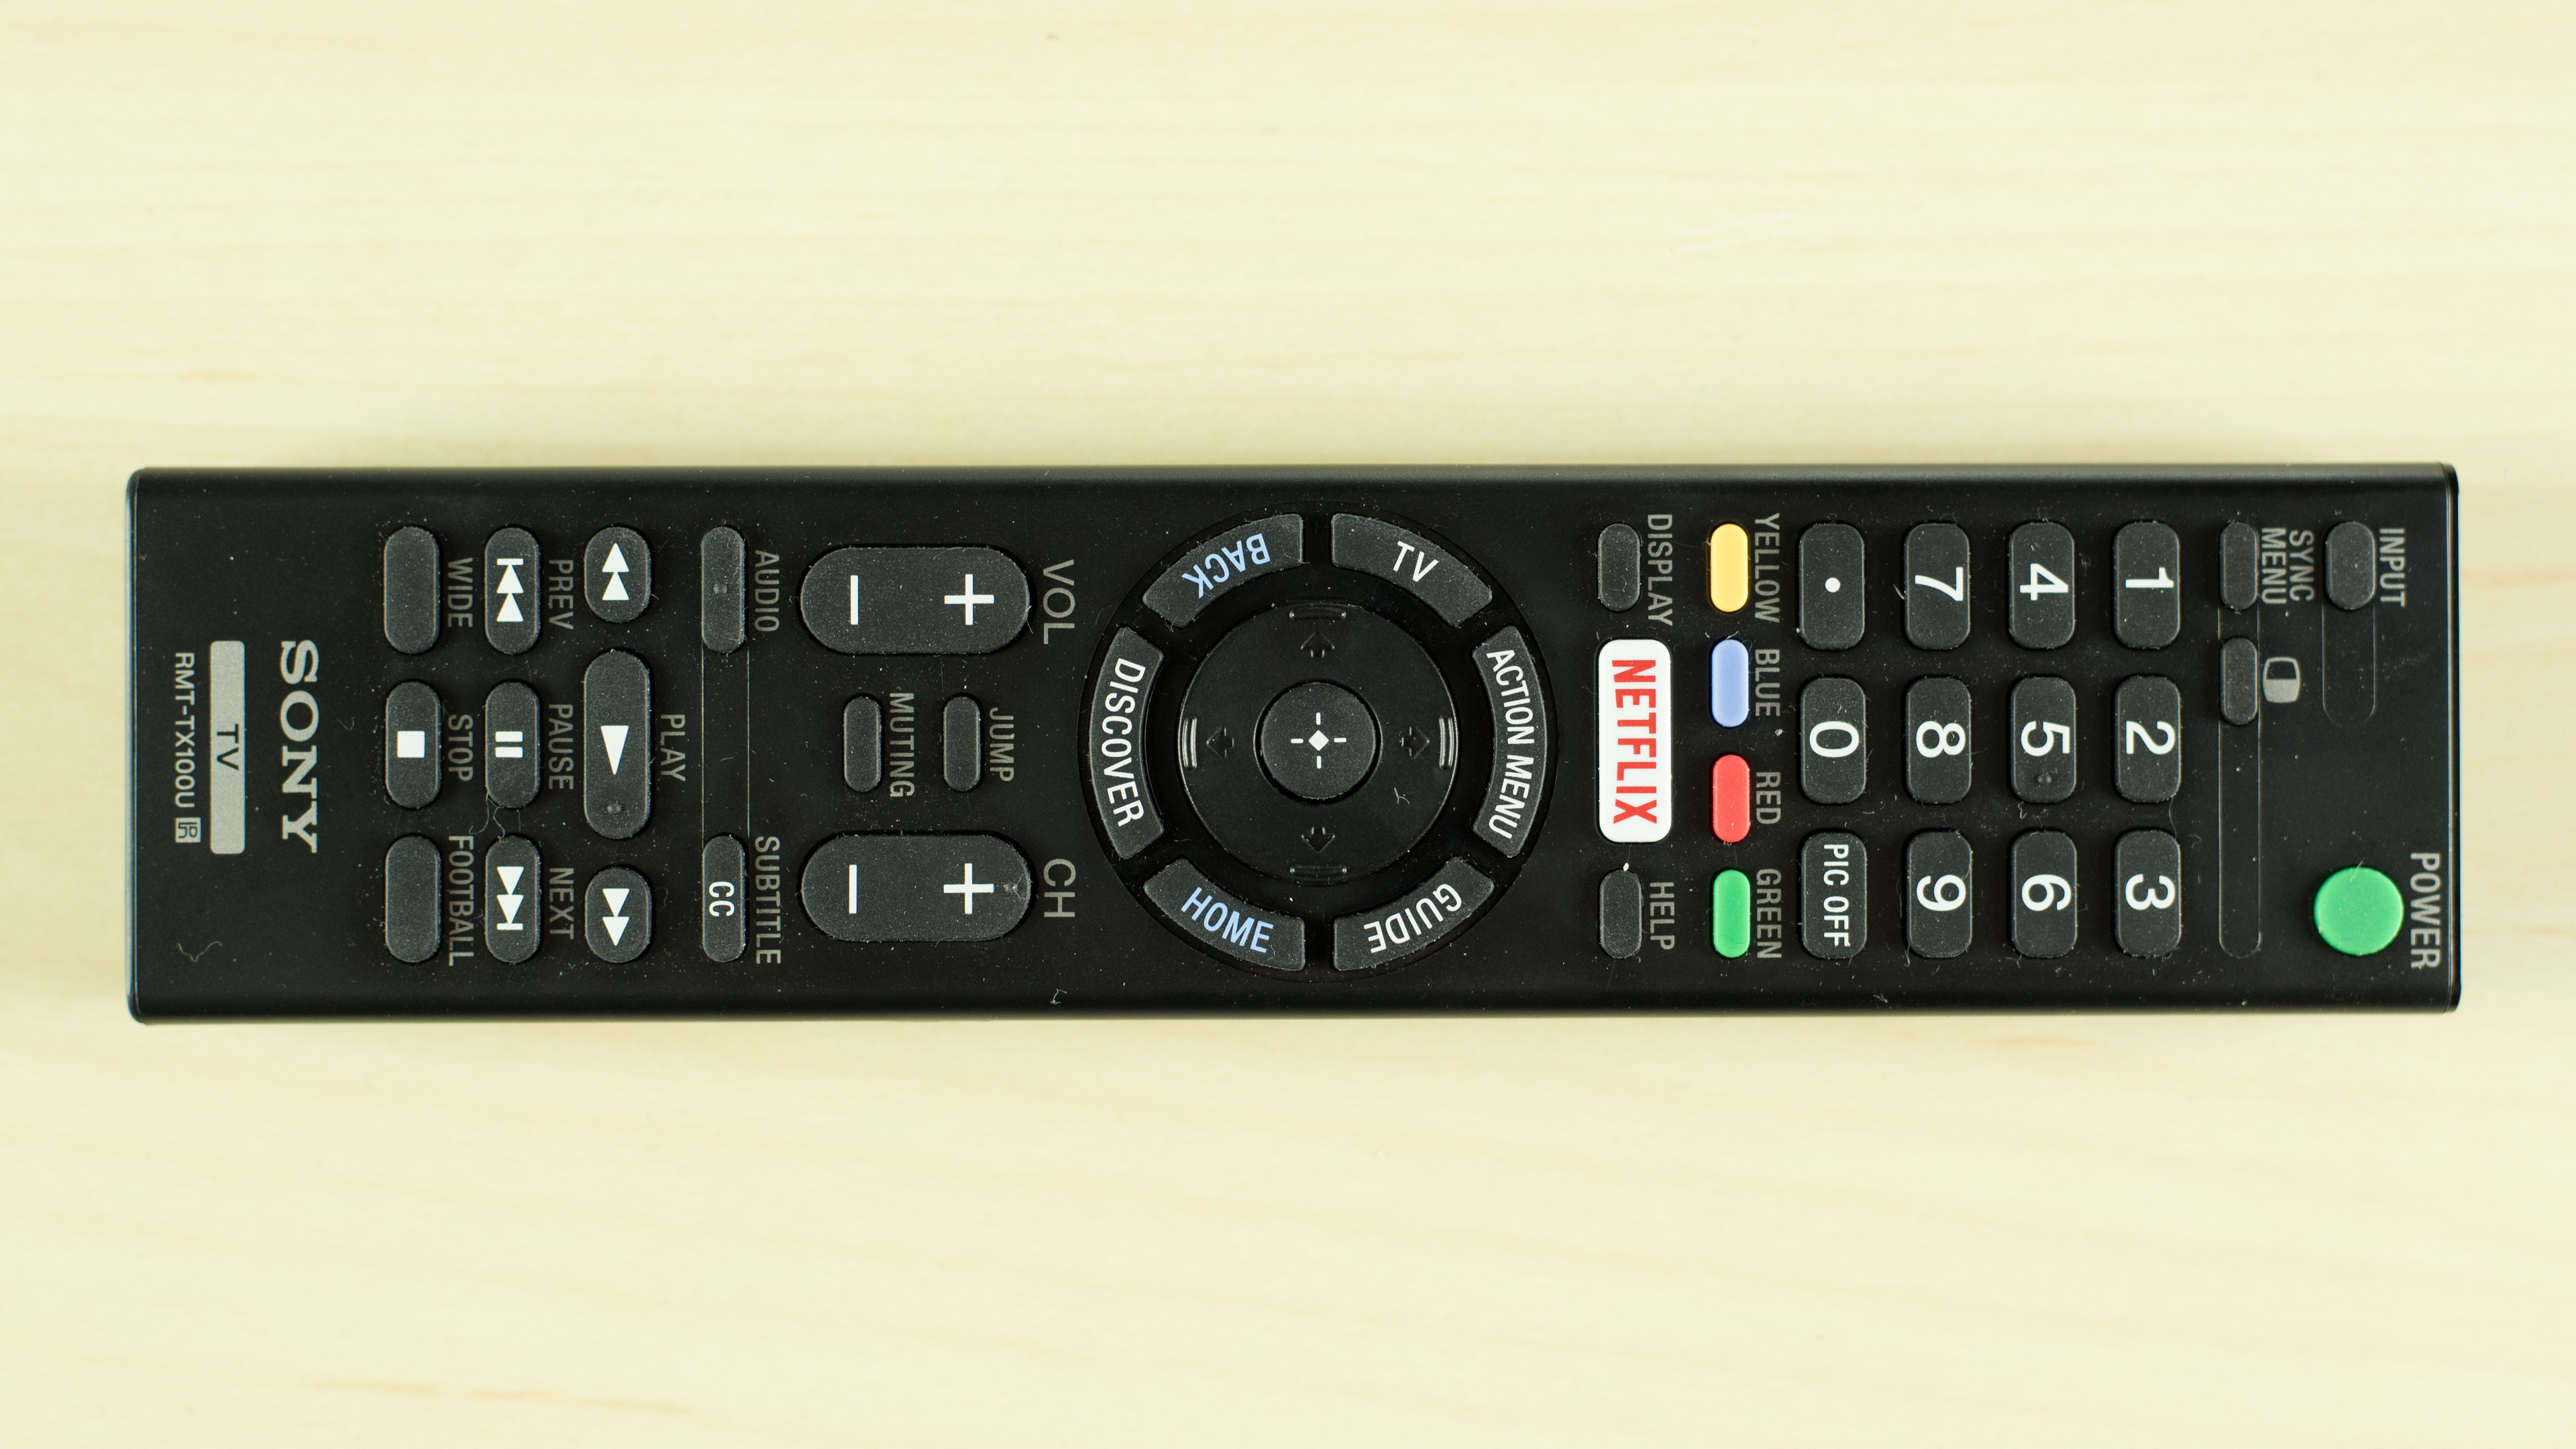 sony android tv remote. sony barvia android tv. is this possible with the standard remote control? http://i.rtings.com/images/reviews/w850c...-large.jpg tv b